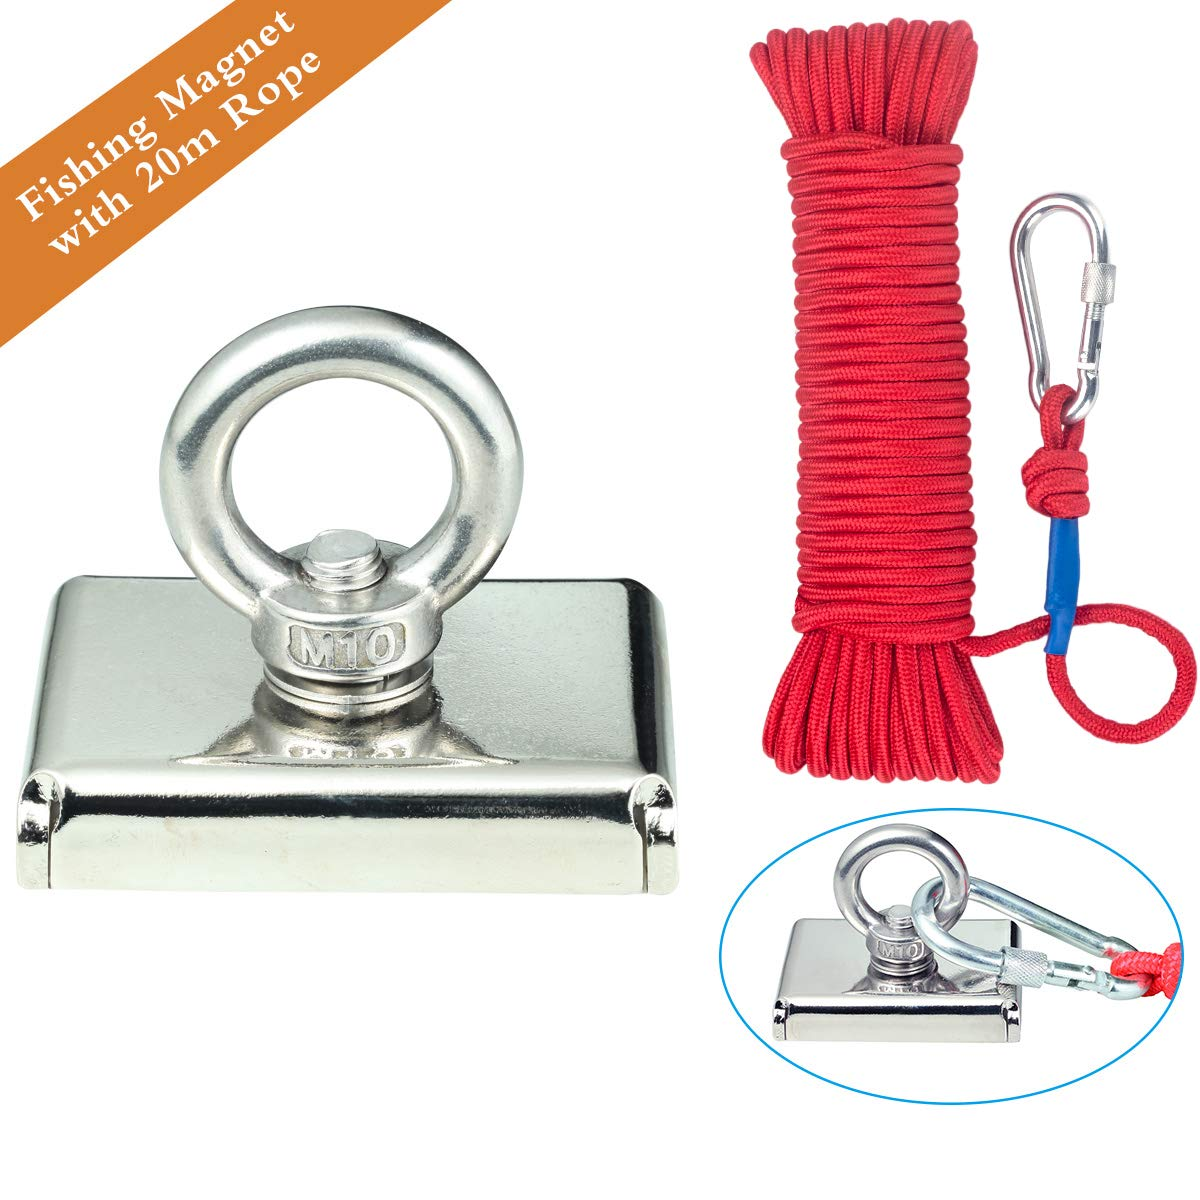 Powerful Retrieving and Holding Magnet with 66 ft Rope, Length 75mm,Wukong Fishing Magnet with Eyebolt,242LBS(110kg) pulling force for Sciences, Industry,Fishing and Salvage